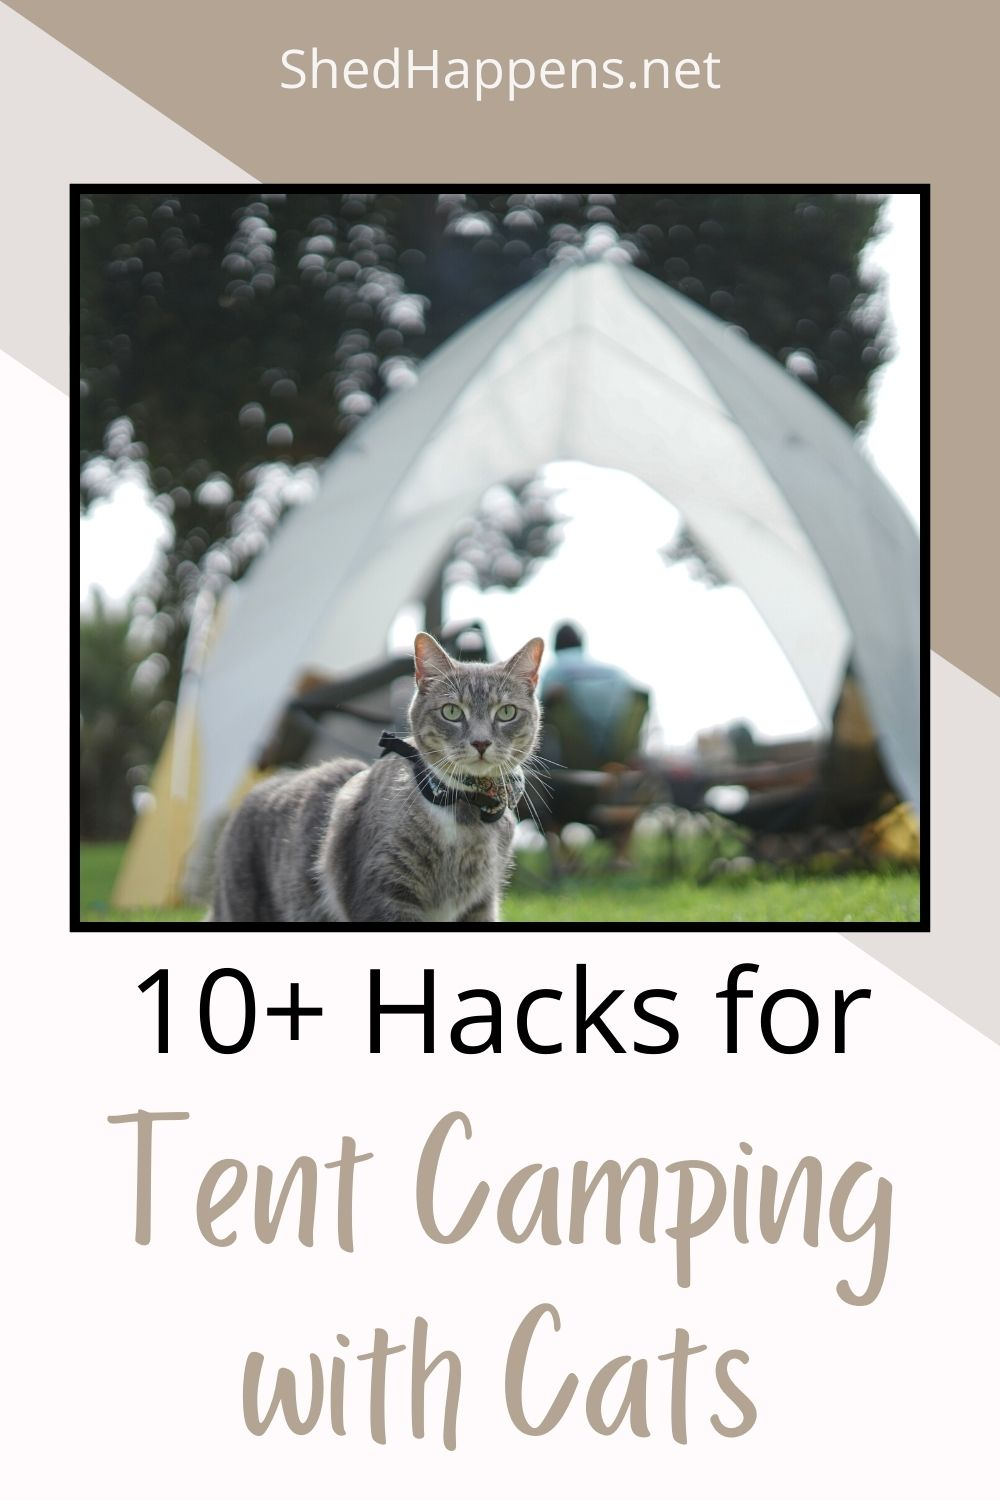 A silver-grey tabby cat is standing outdoors in the grass, wearing a cat harness. In the distance, people are sitting at a picnic table under a tent. Text states: 10+ hacks for tent camping with cats.